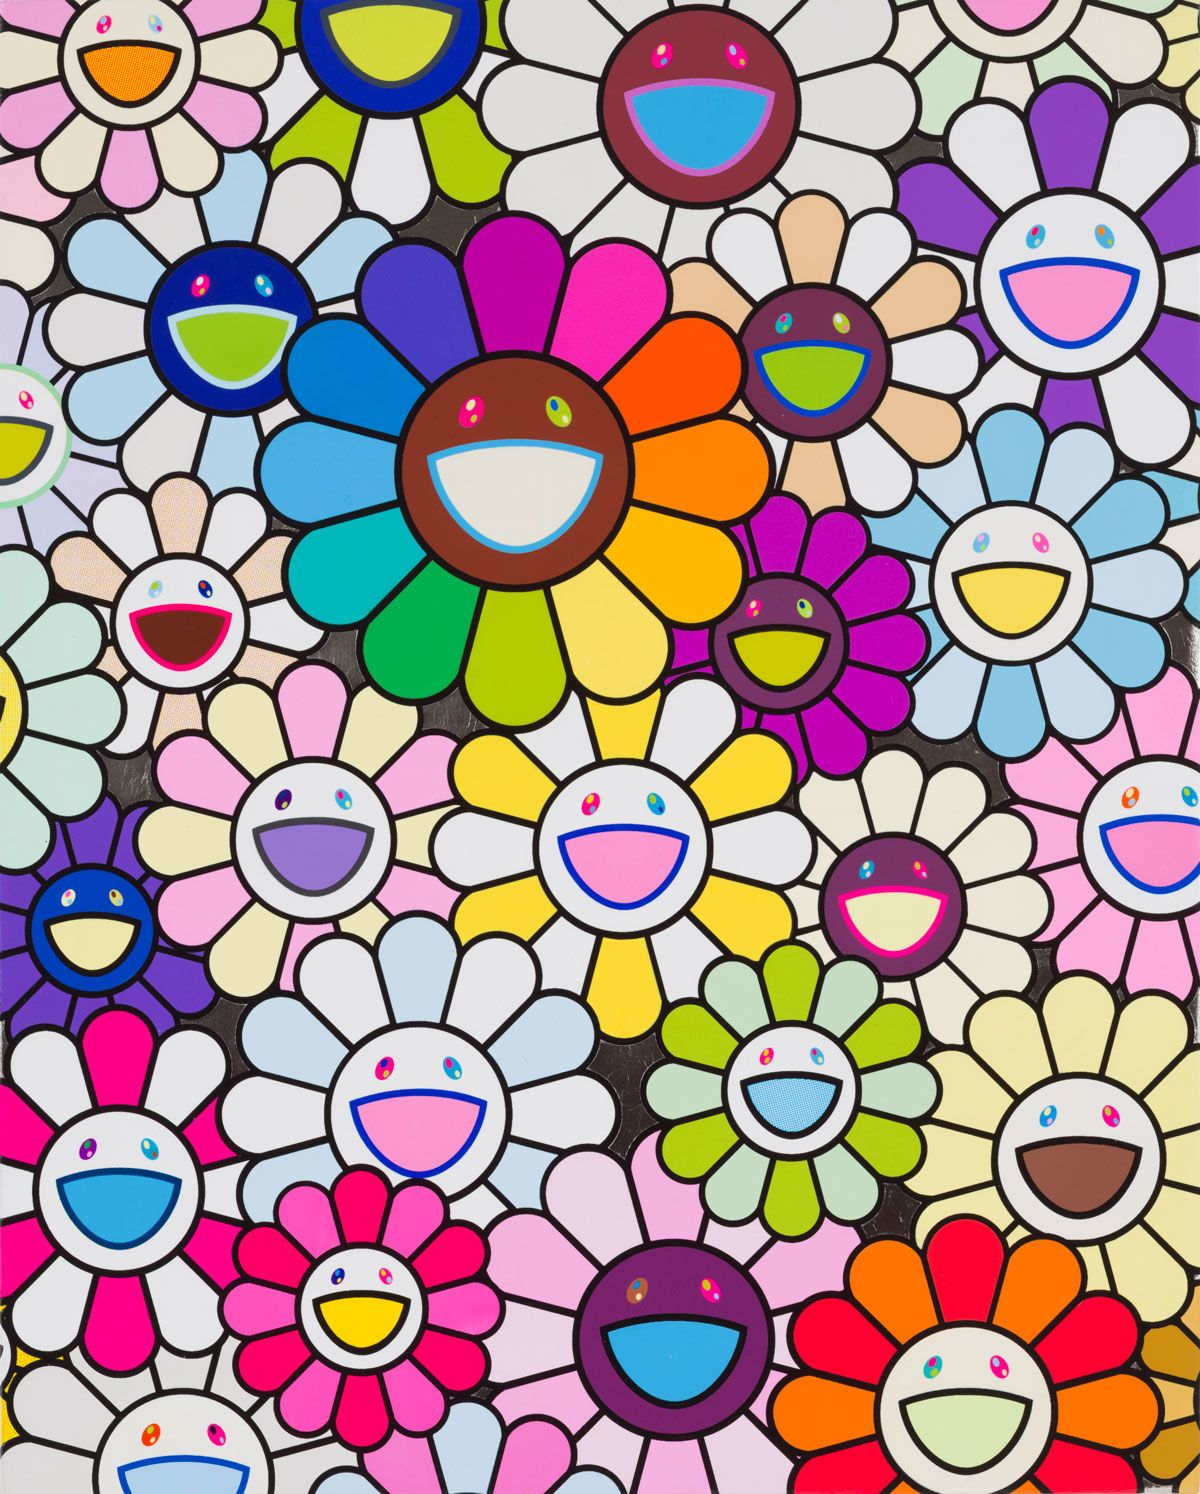 Takashi Murakami on His Path from Frustrated Painter to